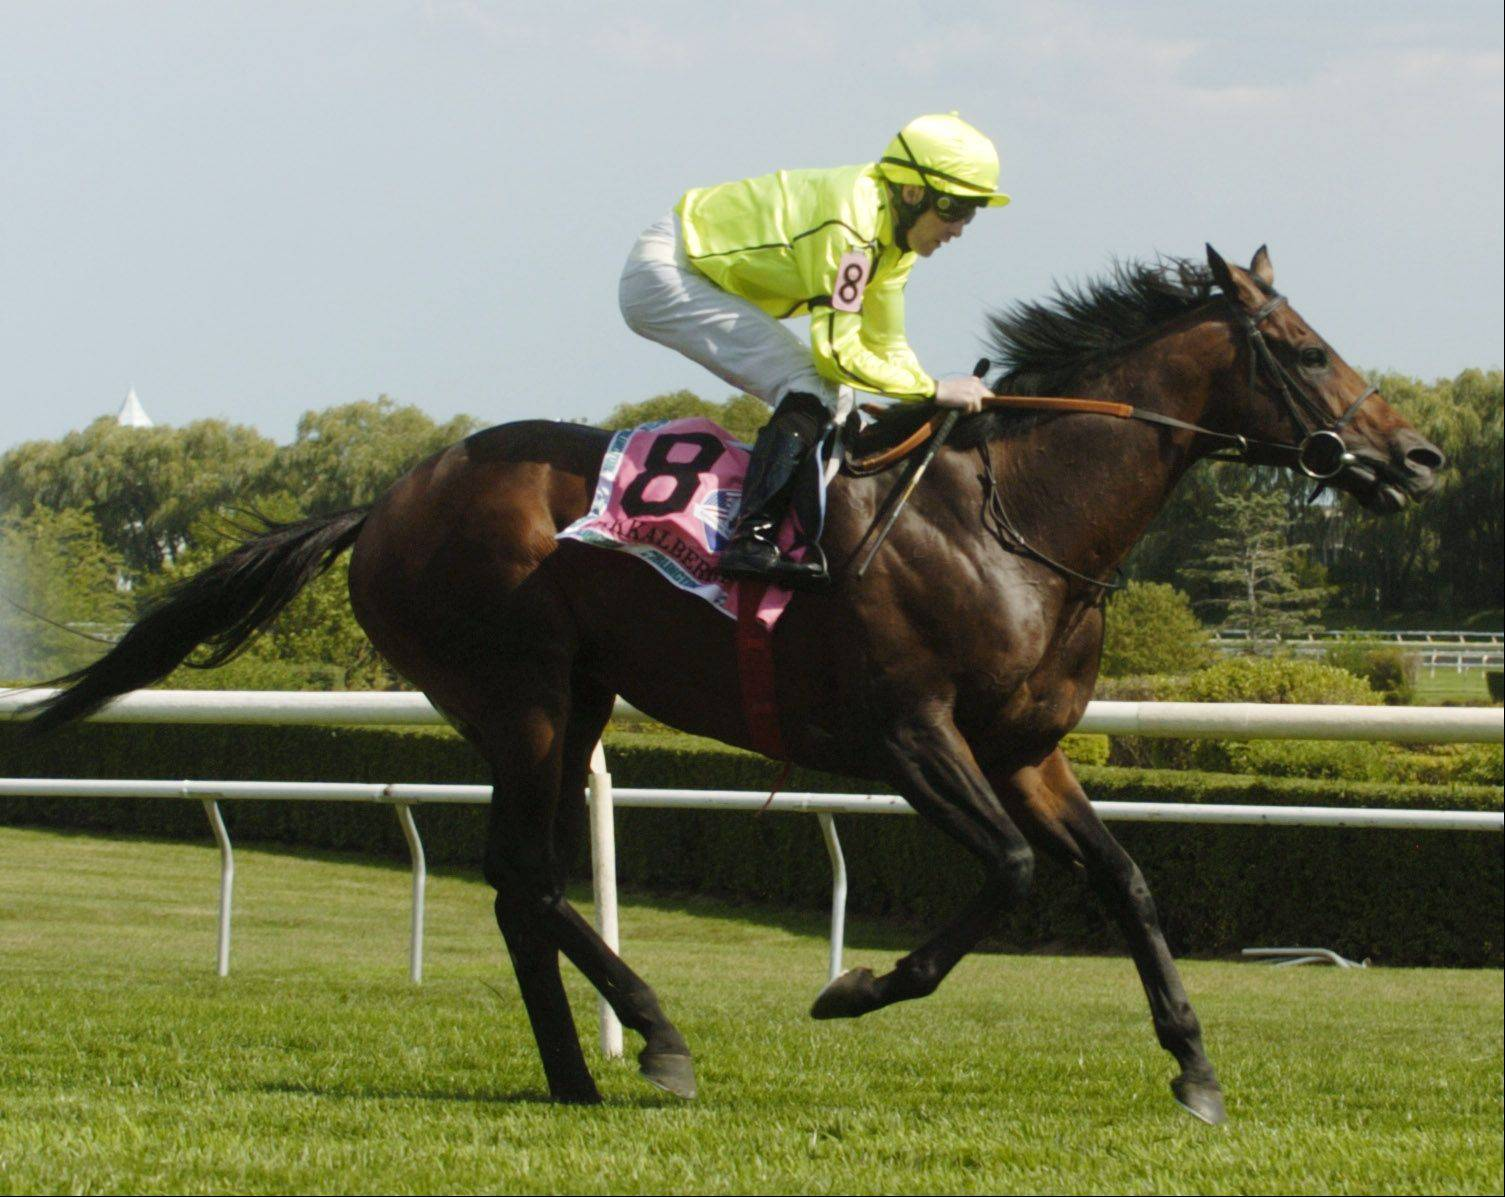 In the long run, St. Leger suits Jakkalberry